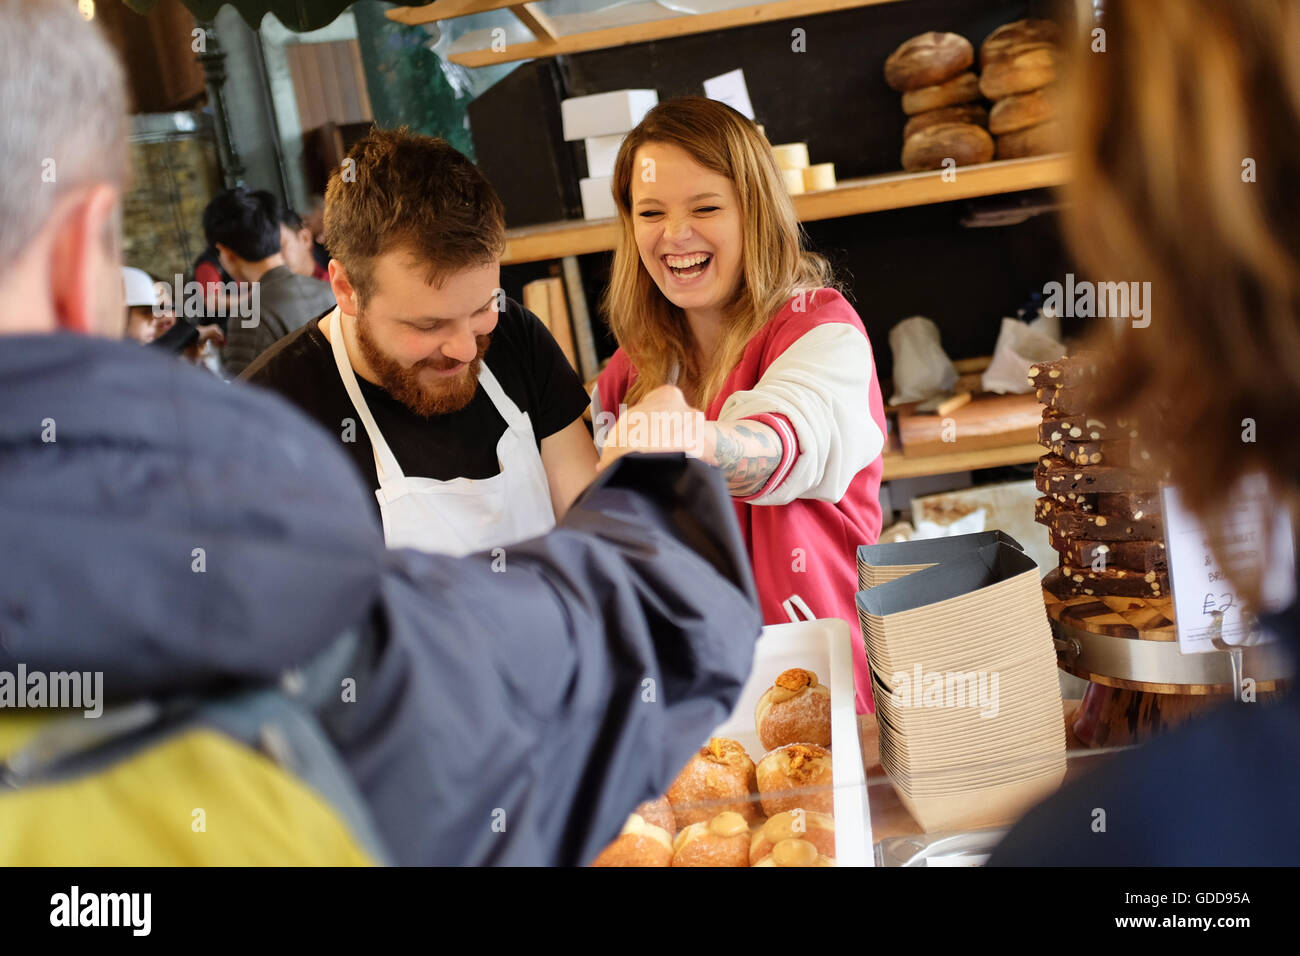 A stall owner handing change back to a shopper at Borough Market in London, England. - Stock Image